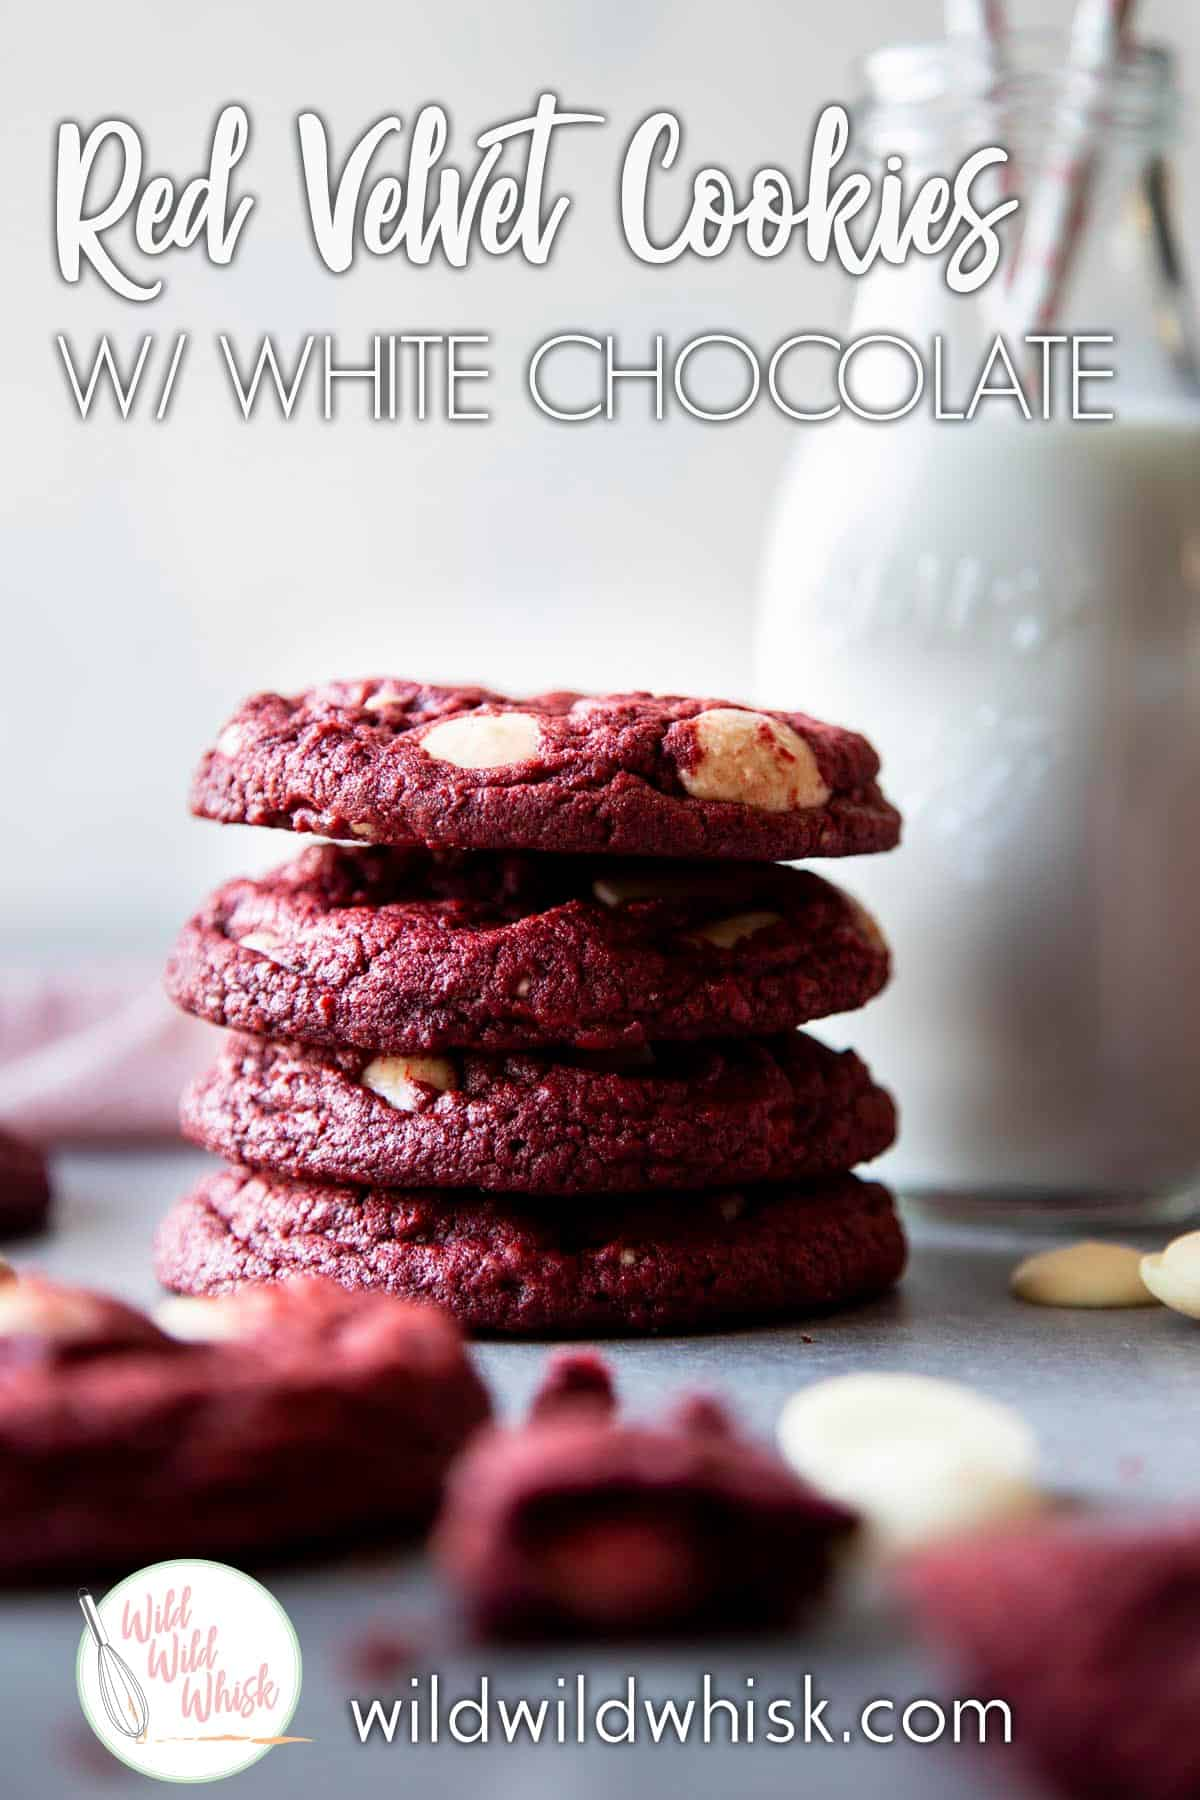 Red Velvet White Chocolate Chip Cookies are a fun twist on the classic chocolate chip cookies. They are chewy with just a hint of chocolate and loaded with creamy white chocolate chips. | wildwildwhisk.com